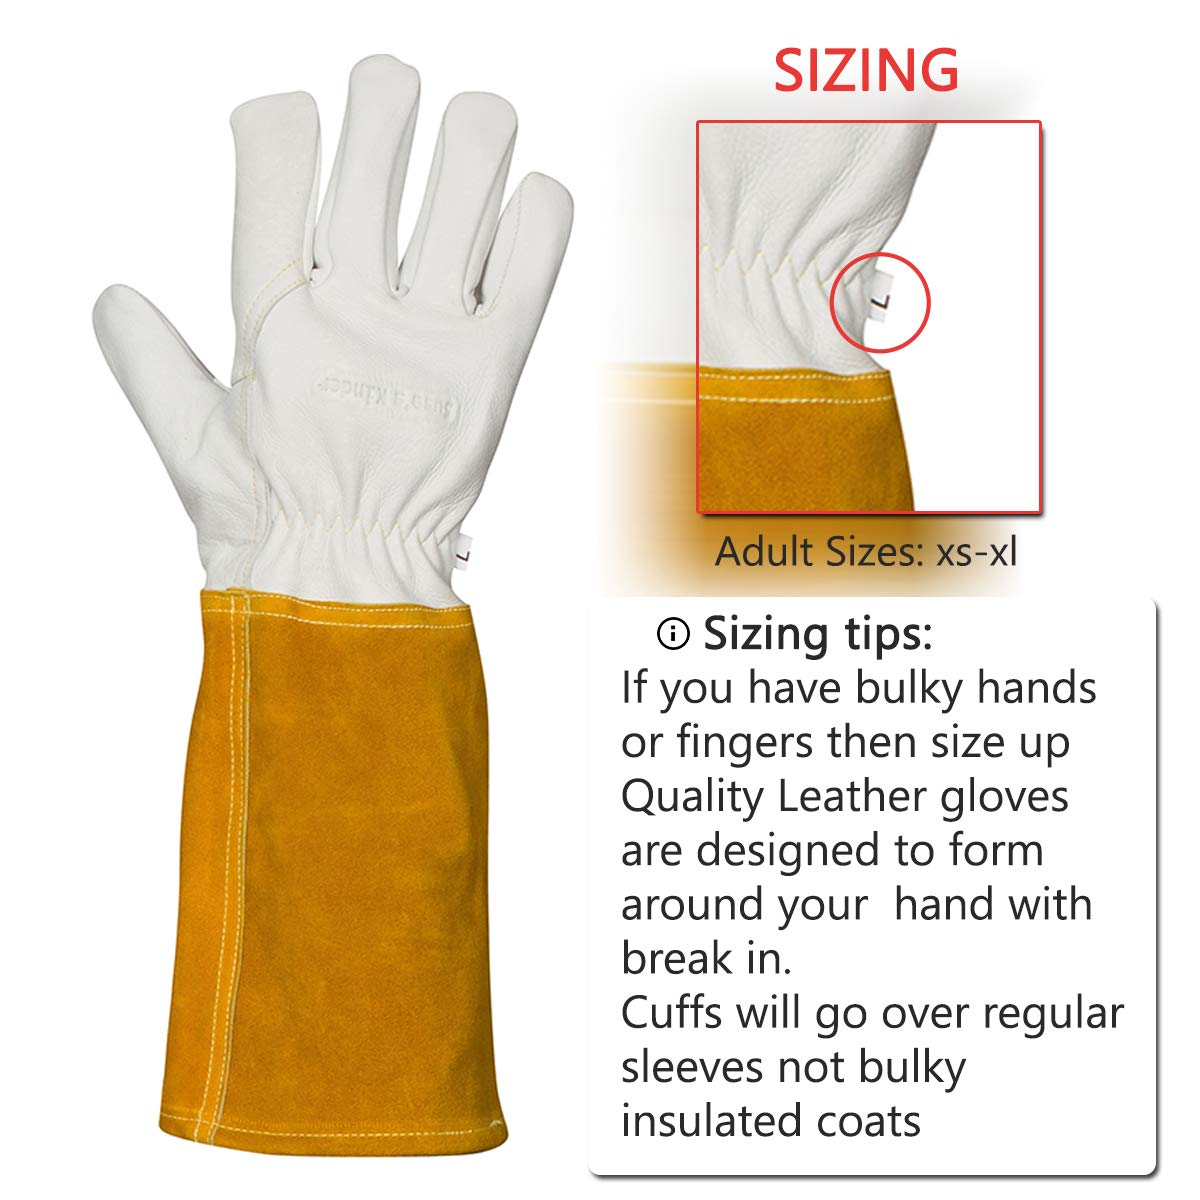 Welding Gloves for Women, Small Mens, Fireproof Heat Resistant, Top Grain Cowhide Kevlar Lined Hand Weld (Small) by Suse's Kinder (Image #3)